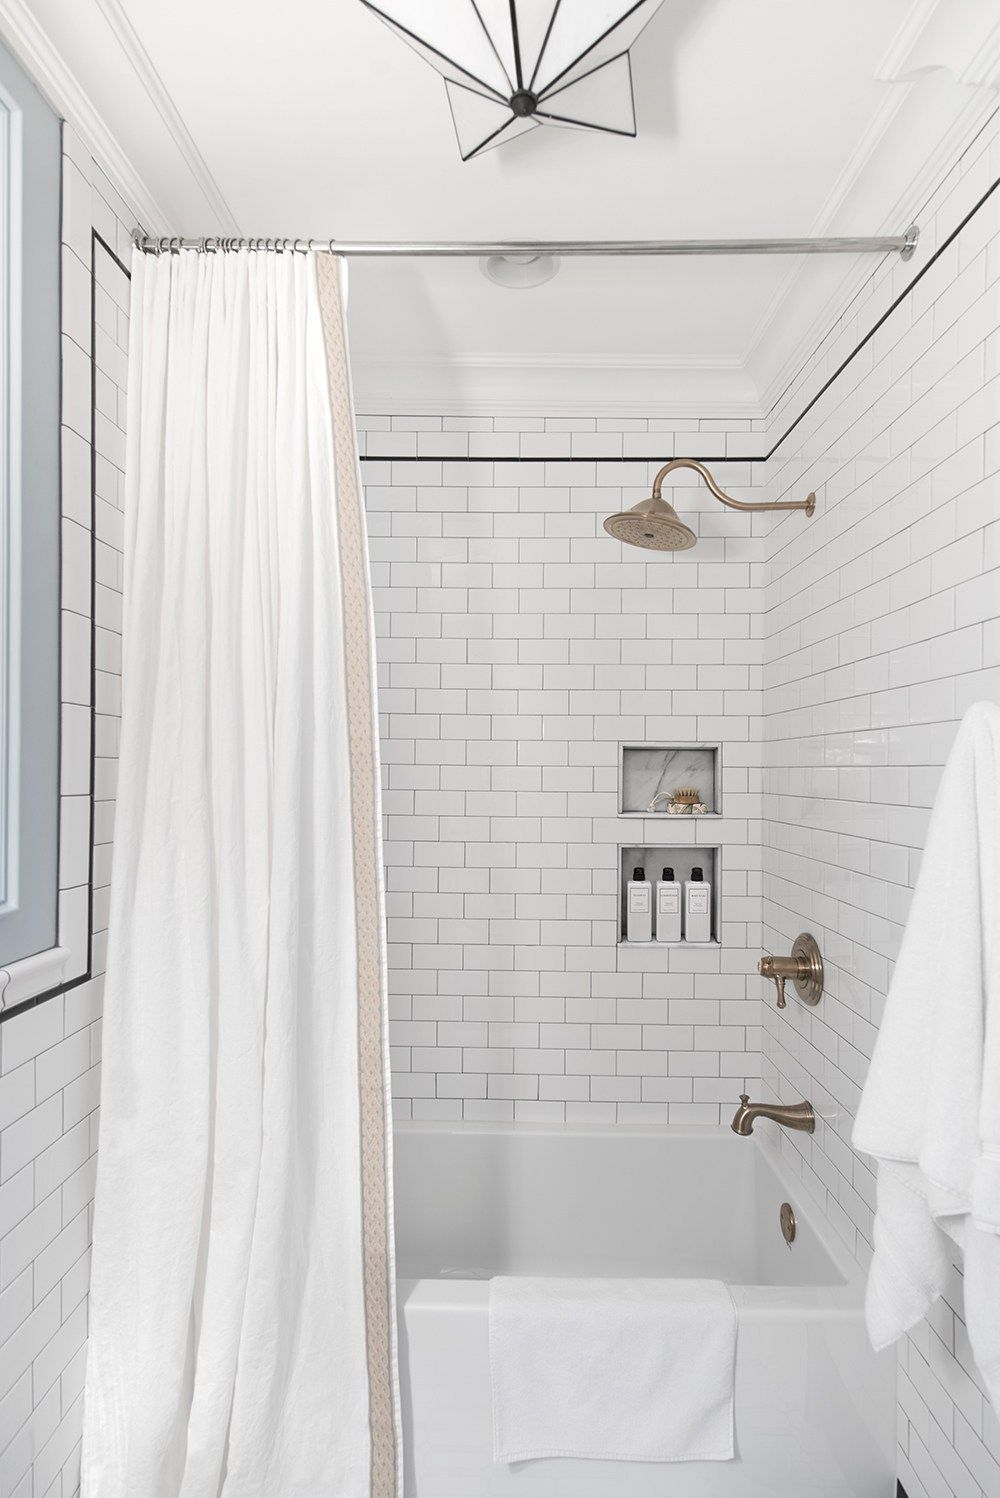 Extra Long Shower Curtain Diy Room For Tuesday Blog Long Shower Curtains Extra Long Shower Curtain Diy Shower Curtain